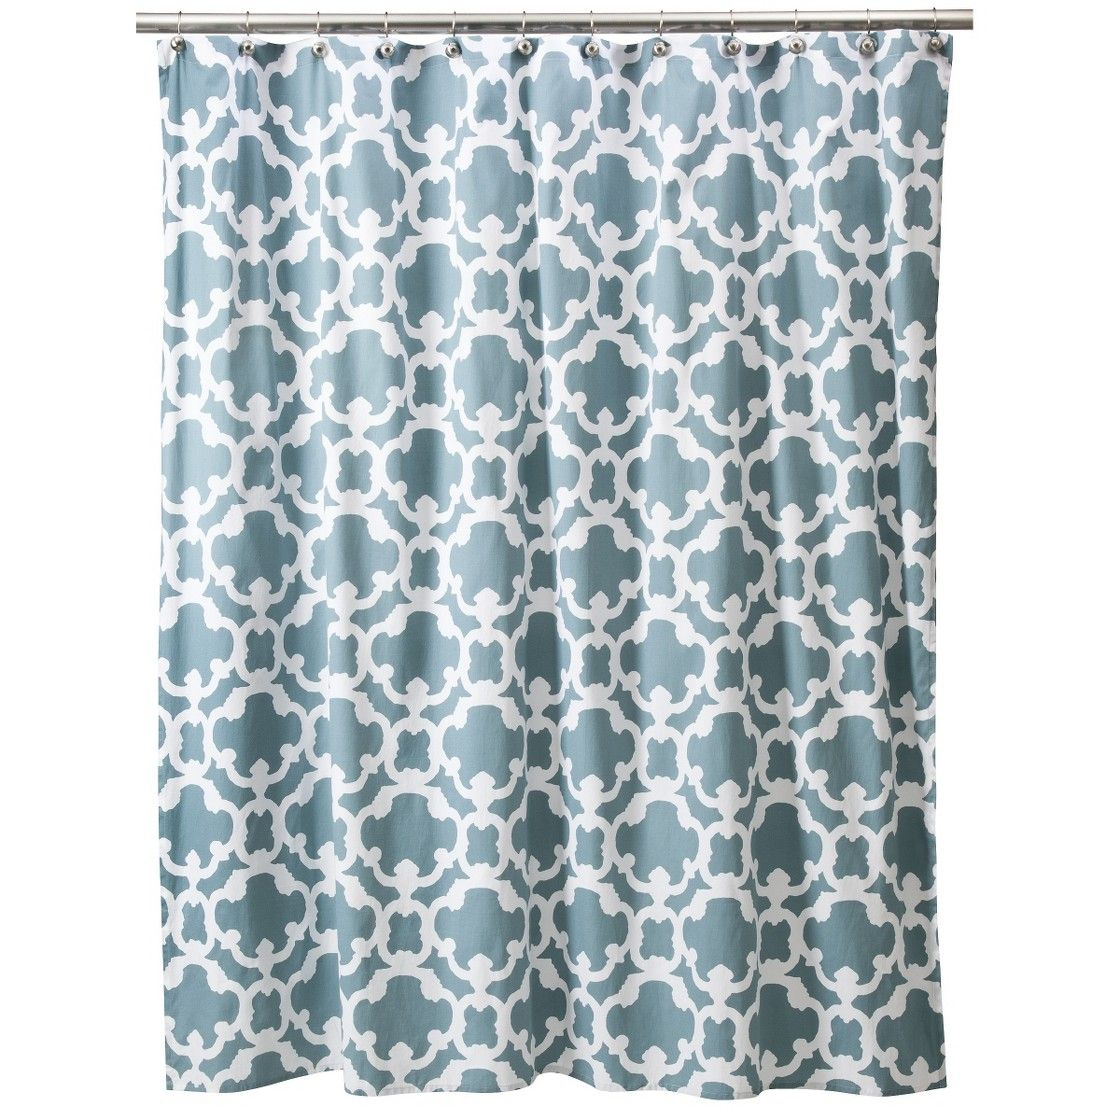 Hot pink shower curtain - Target Curtains Hot Pink Shower Curtain Threshold Grid Shower Curtain Home Blue Target Shower Curtainscurtain